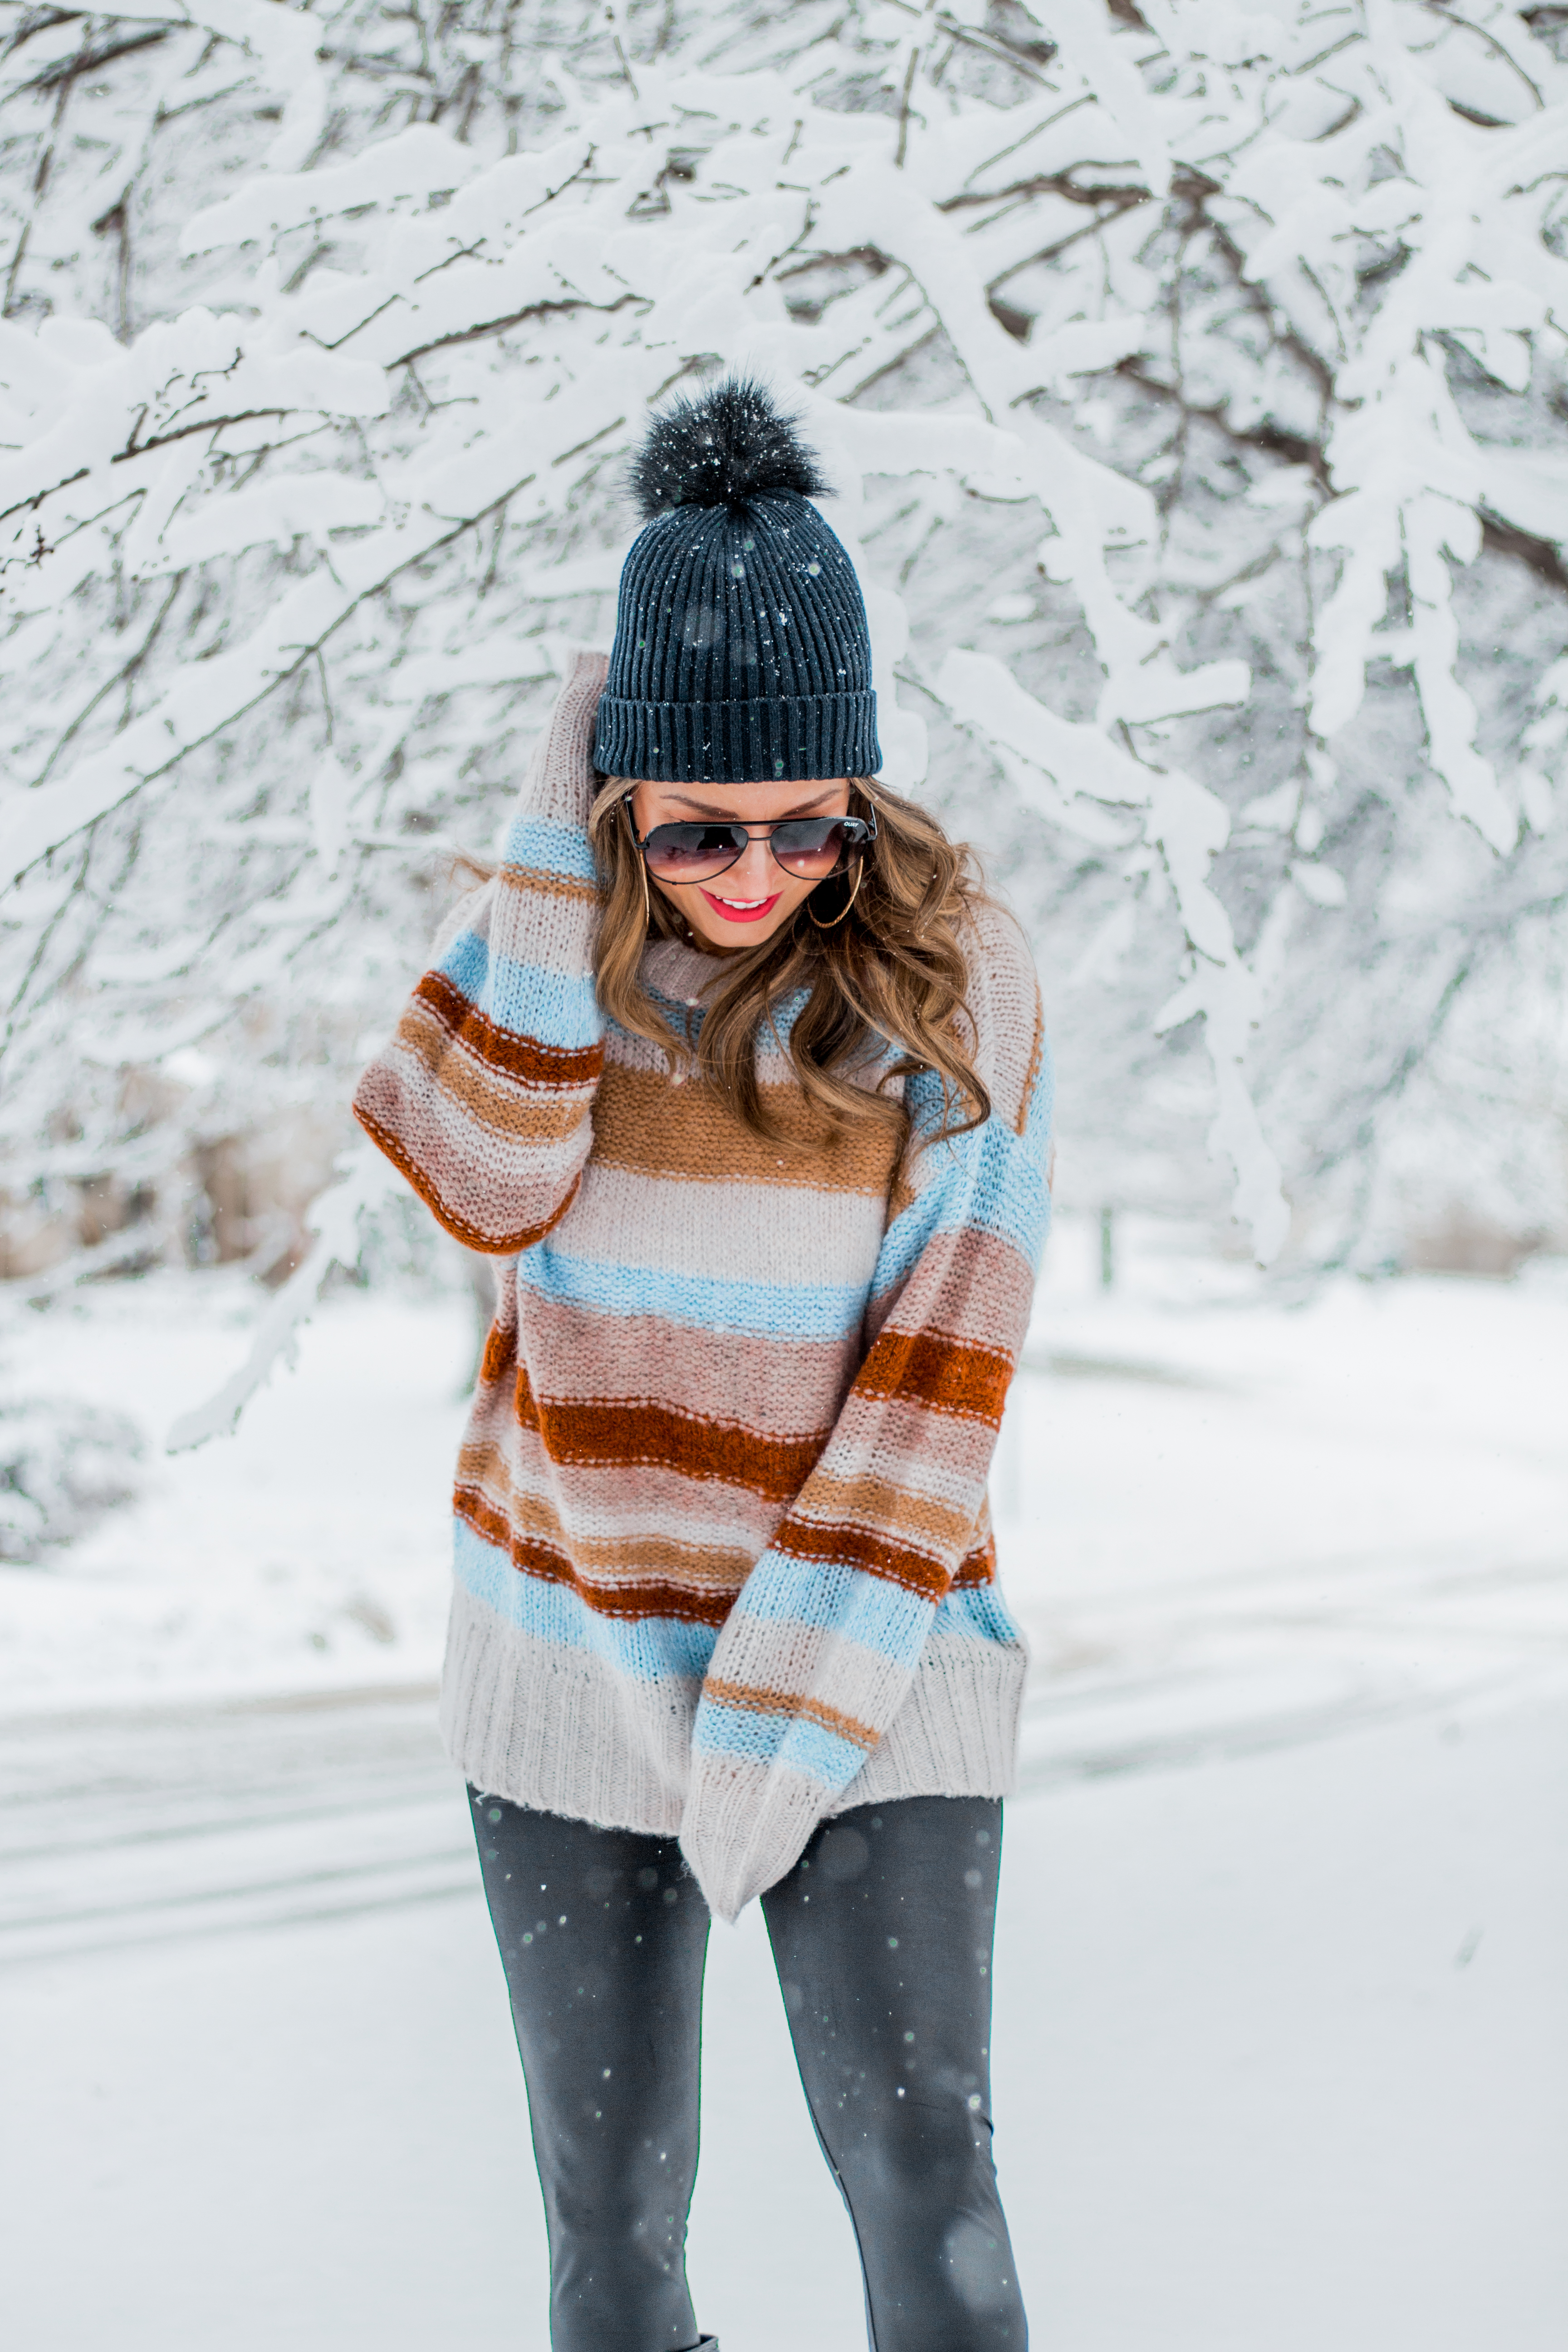 Women's Fashion - American Eagle Sweater - Hunter Boots - Beanie - Snow Day - OOTD - Fashion Blogger - Winter Fashion - 7